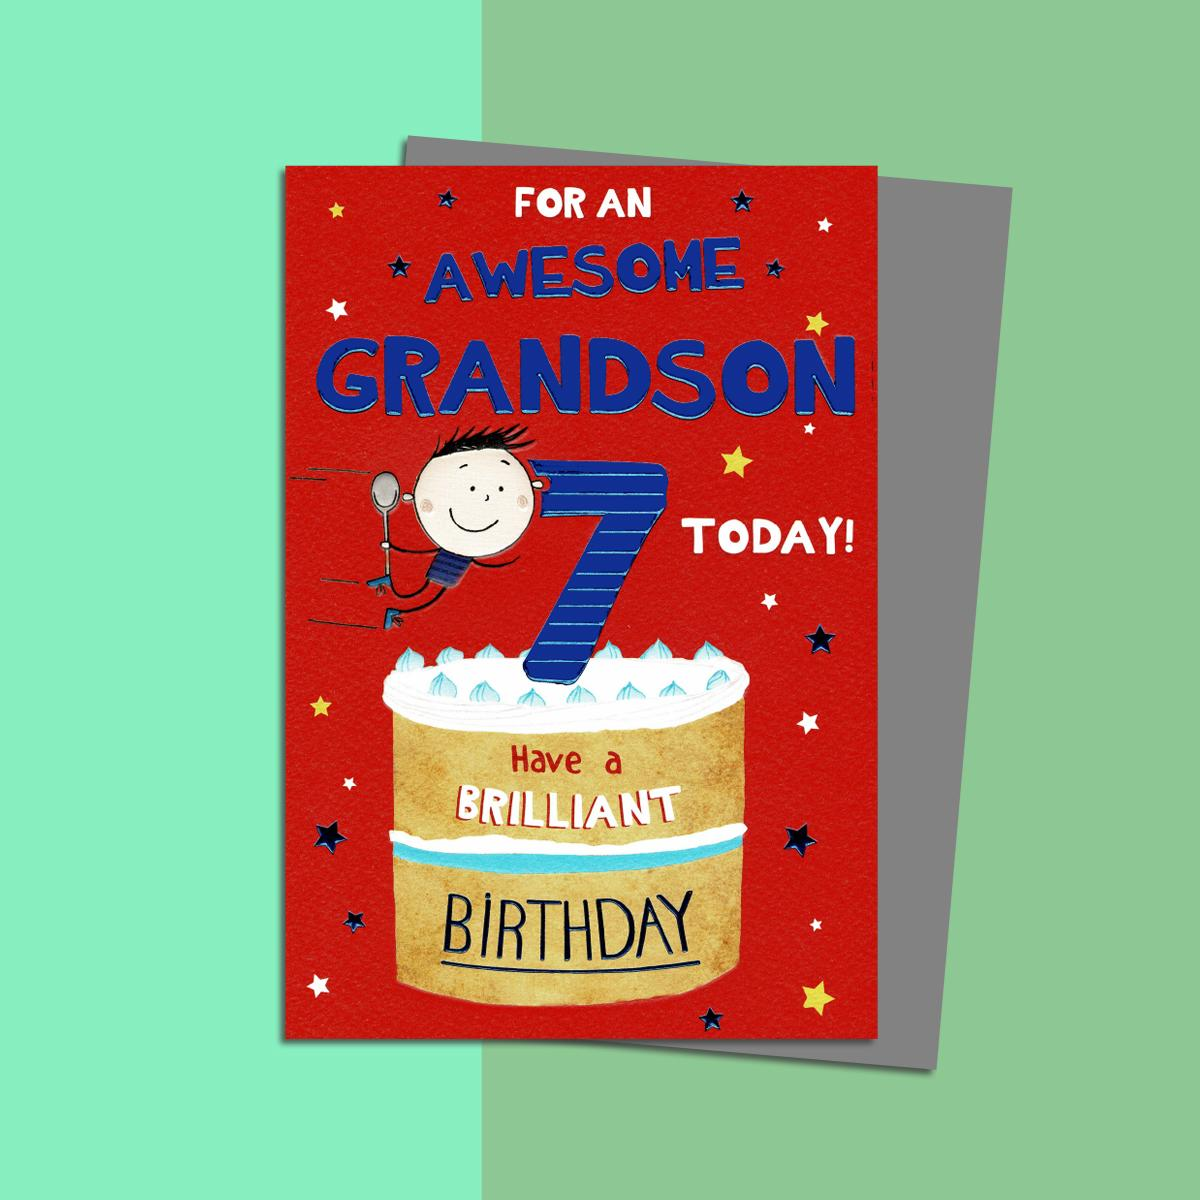 Grandson Age 7 Birthday Card Sitting On A Display Shelf